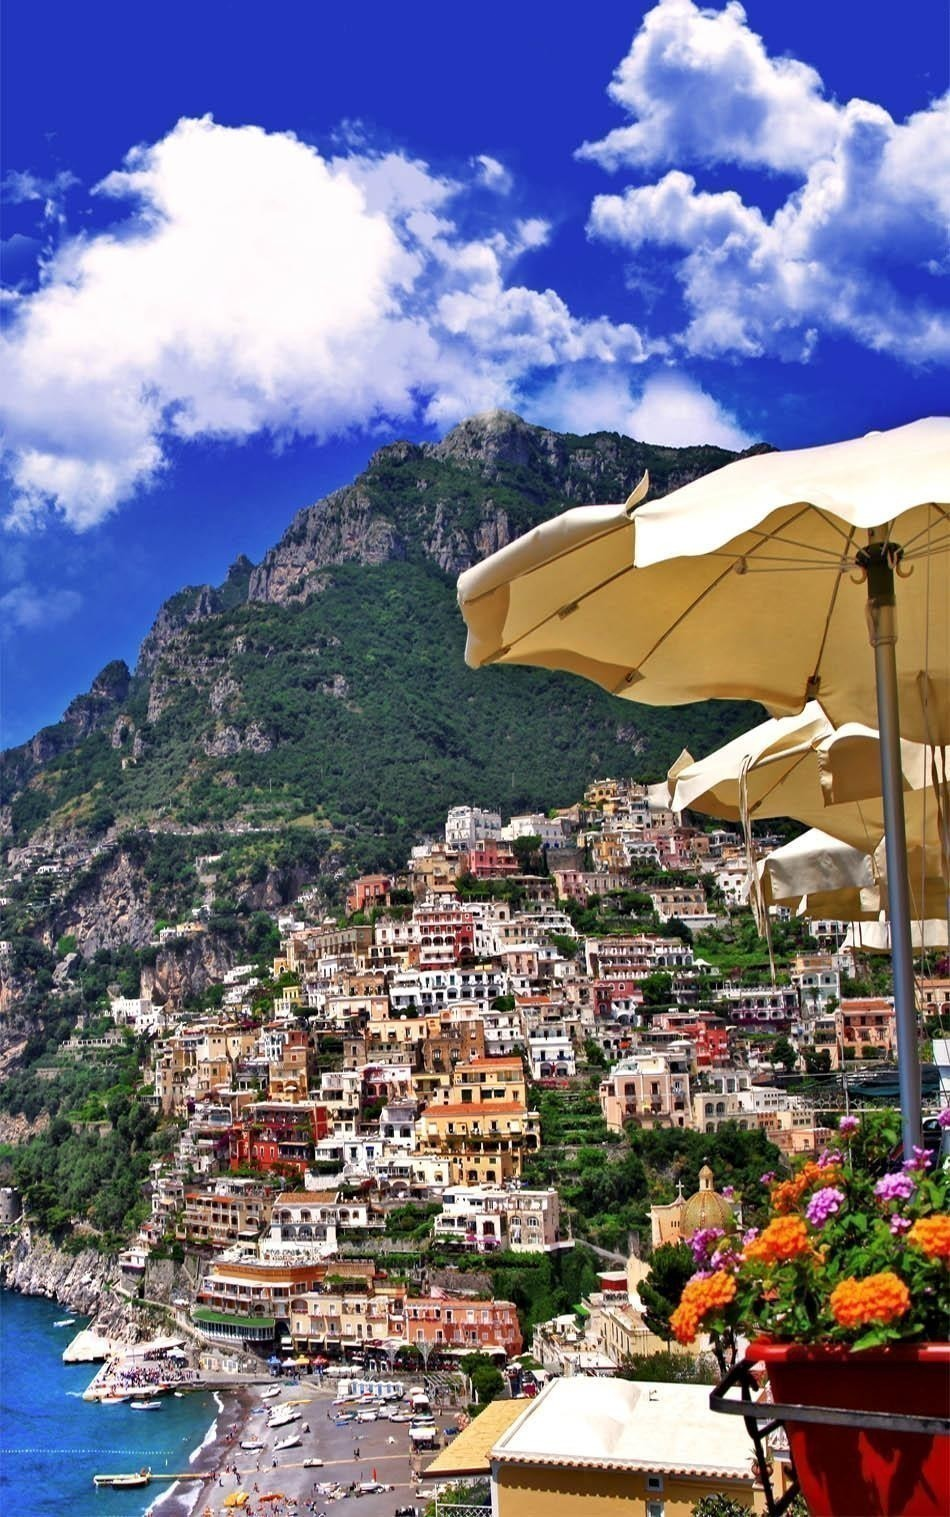 Amazing Positano - Scenic Amalfi Coast | Italy Travel Guide